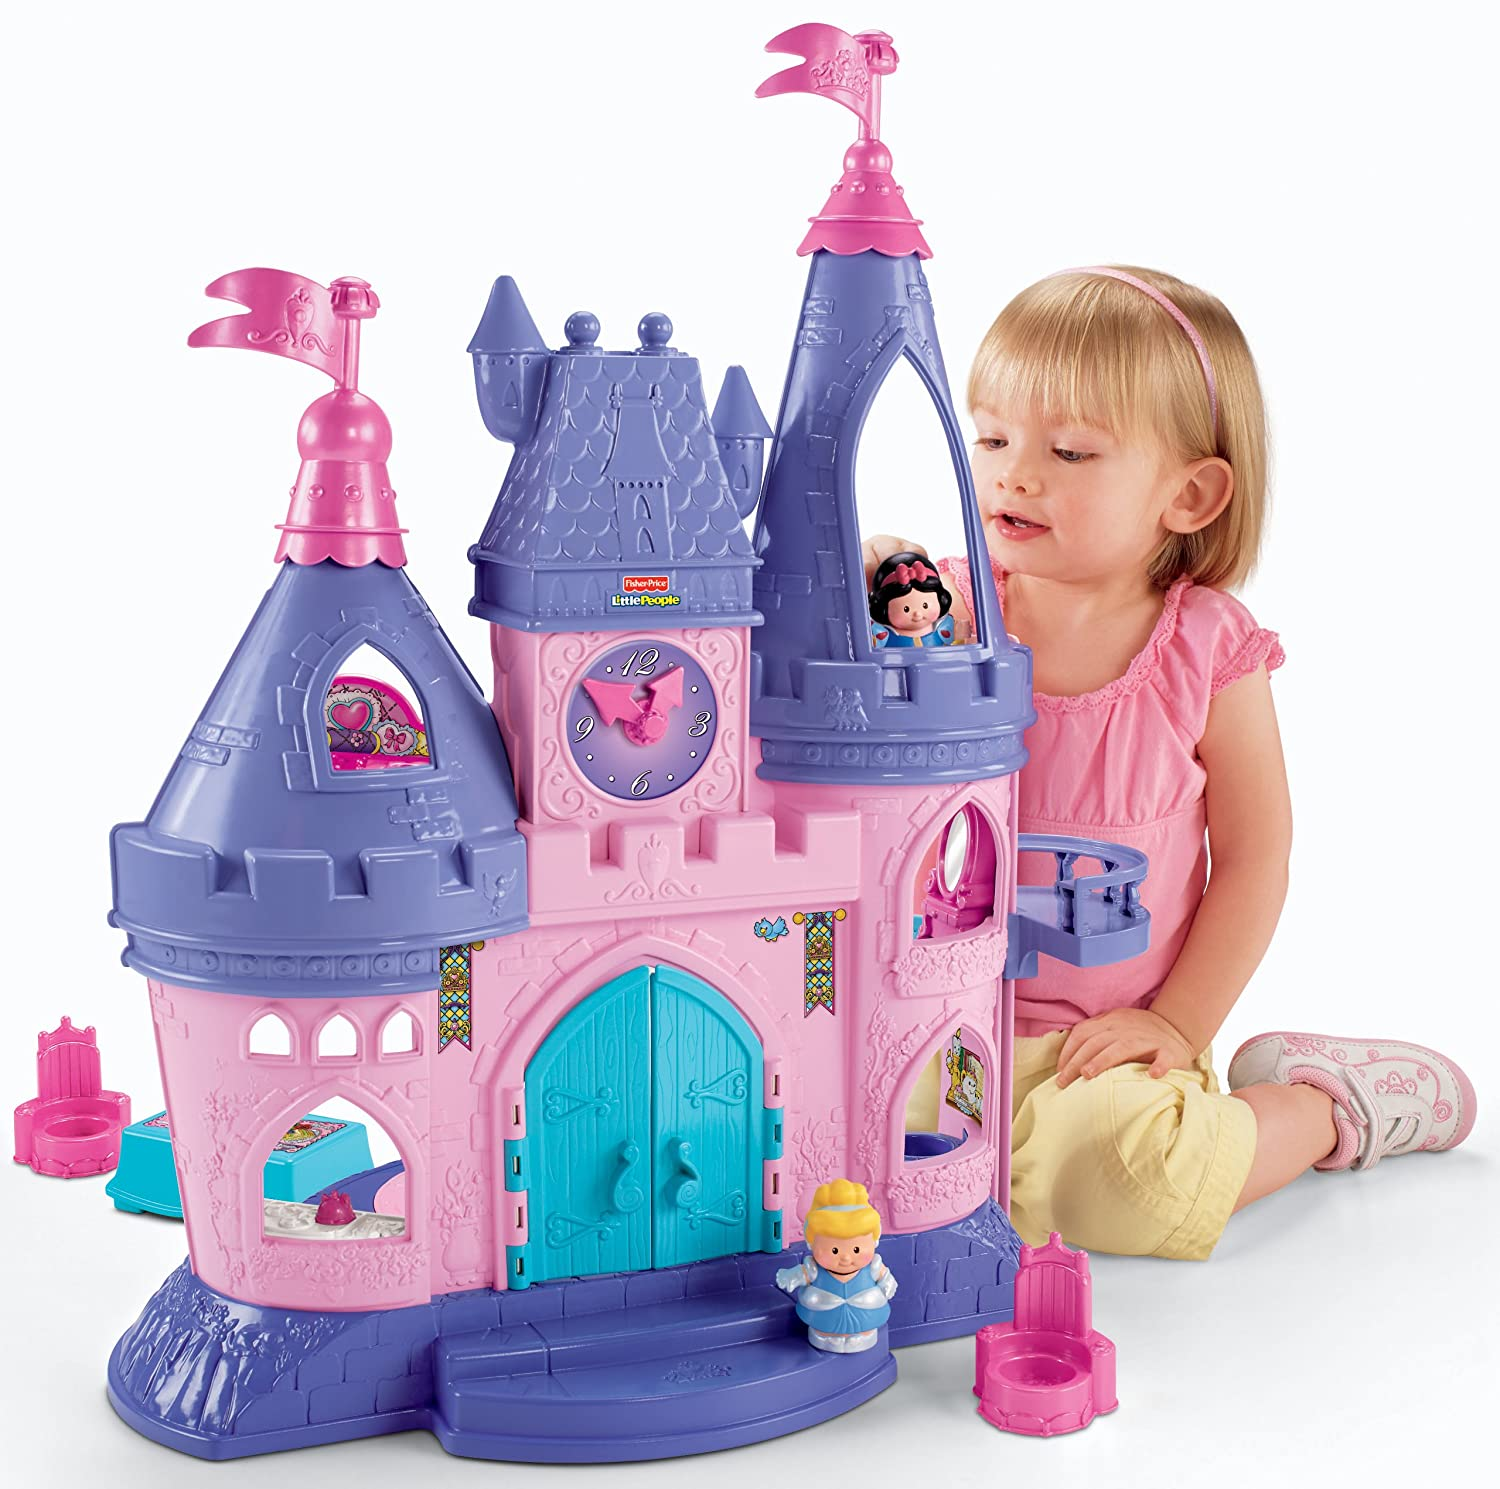 Best Toys Gifts For 3 Year Old Girls : Best gifts for year old girls in itsy bitsy fun